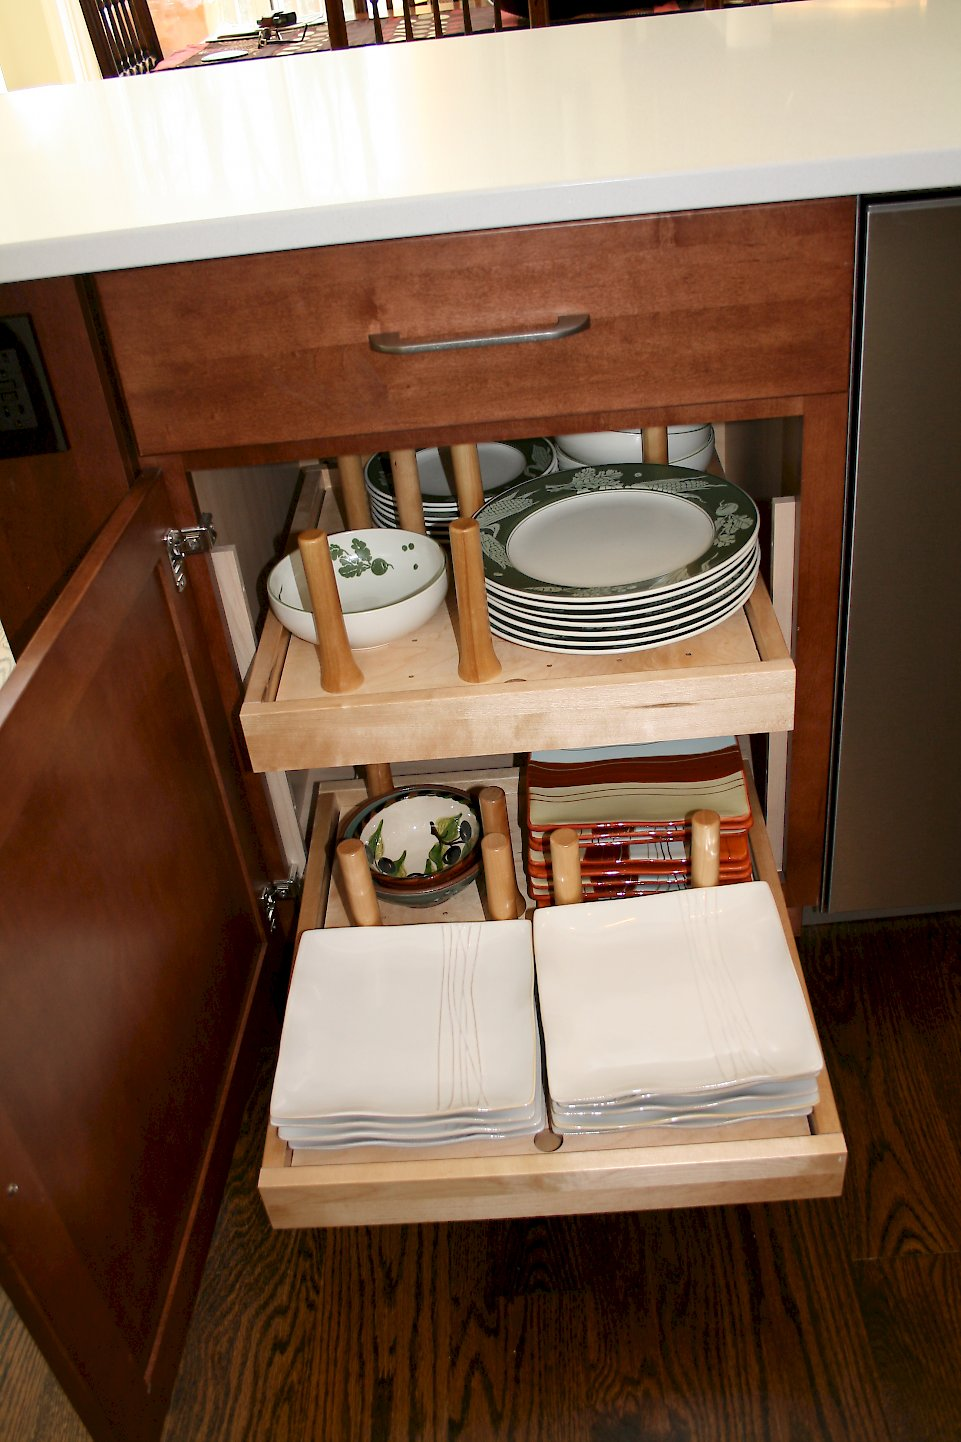 Pull out drawers with pegs to hold dishes.